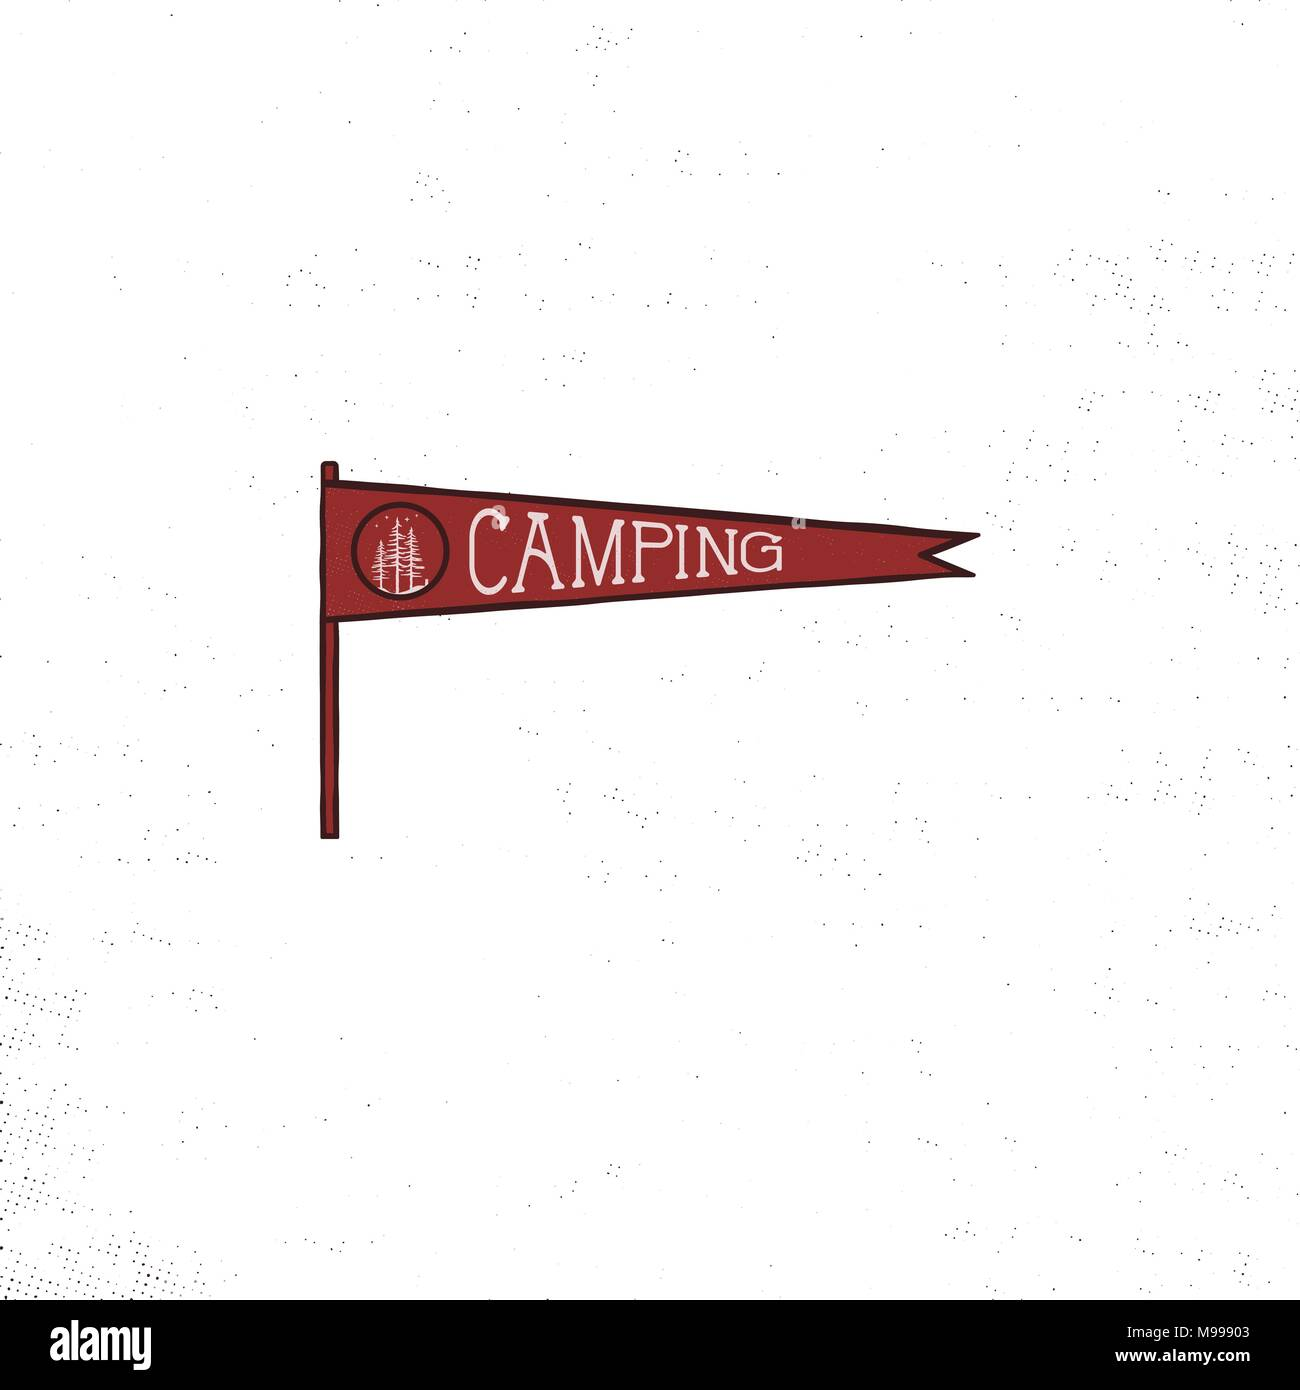 Camping pennant template. Vintage Hand drawn pennant in retro colors design. Best for t-shirts, travel mugs, backpack and any other identities. Stock vector isolated on white background. Stock Vector